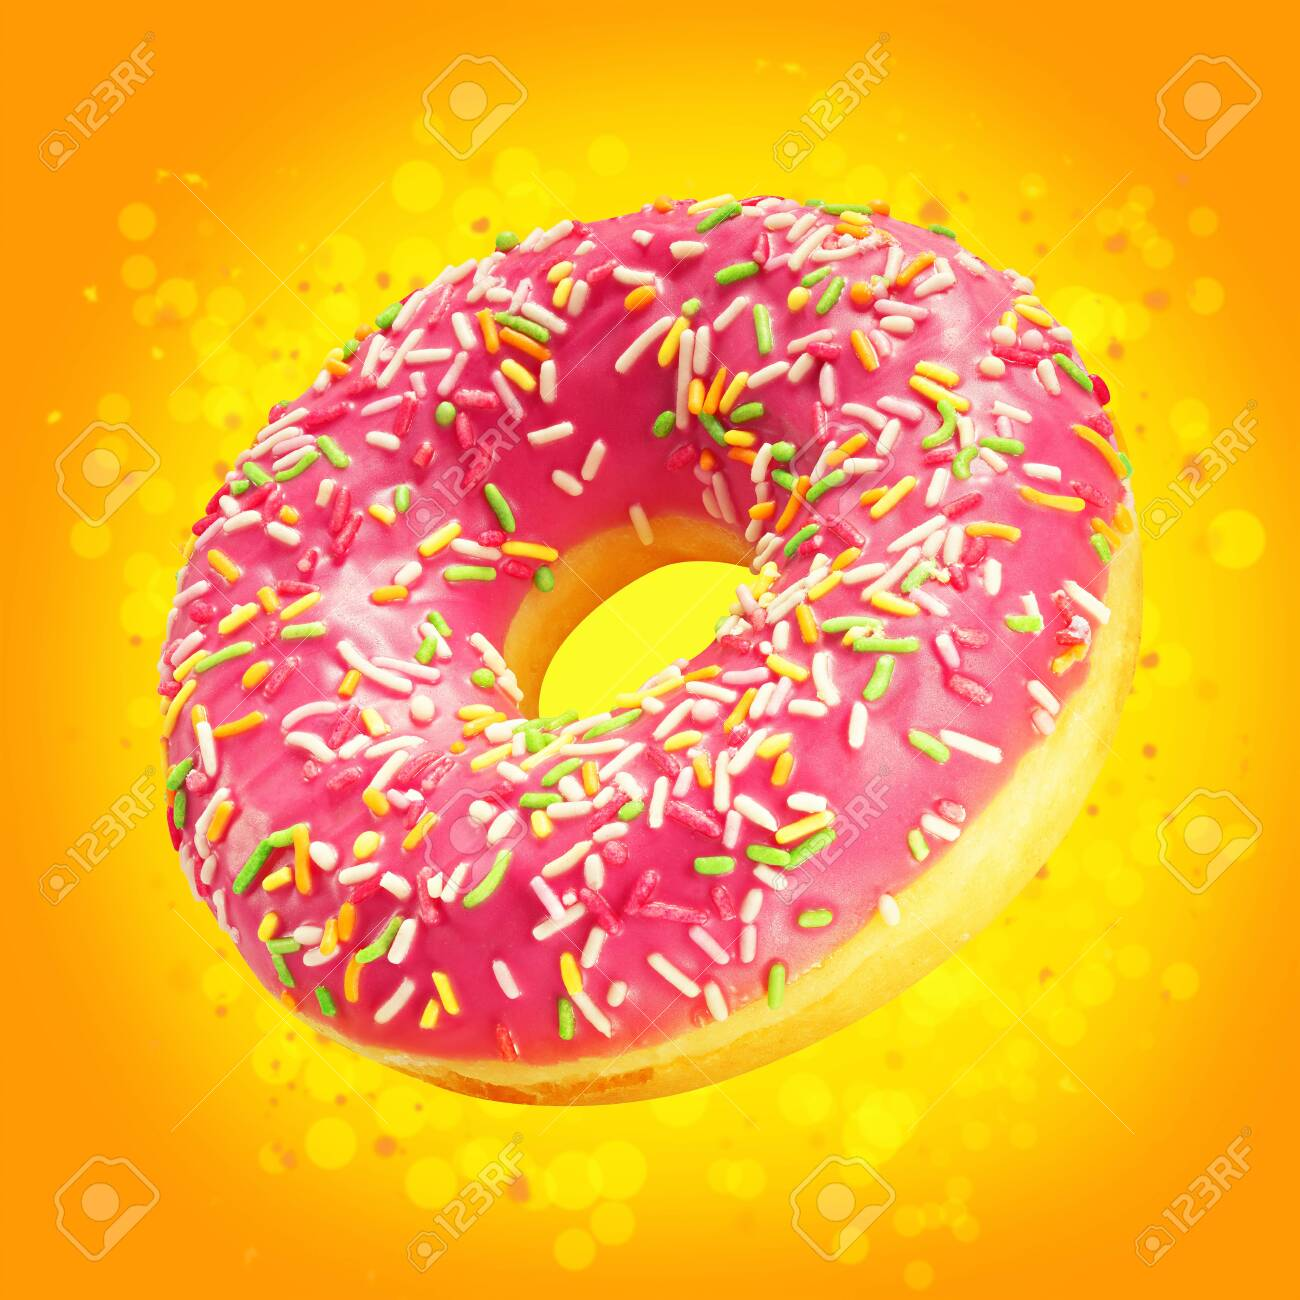 Download Design Mockup Donut Closeup With Frosted Pink Glaze Sweet Food Stock Photo Picture And Royalty Free Image Image 122024471